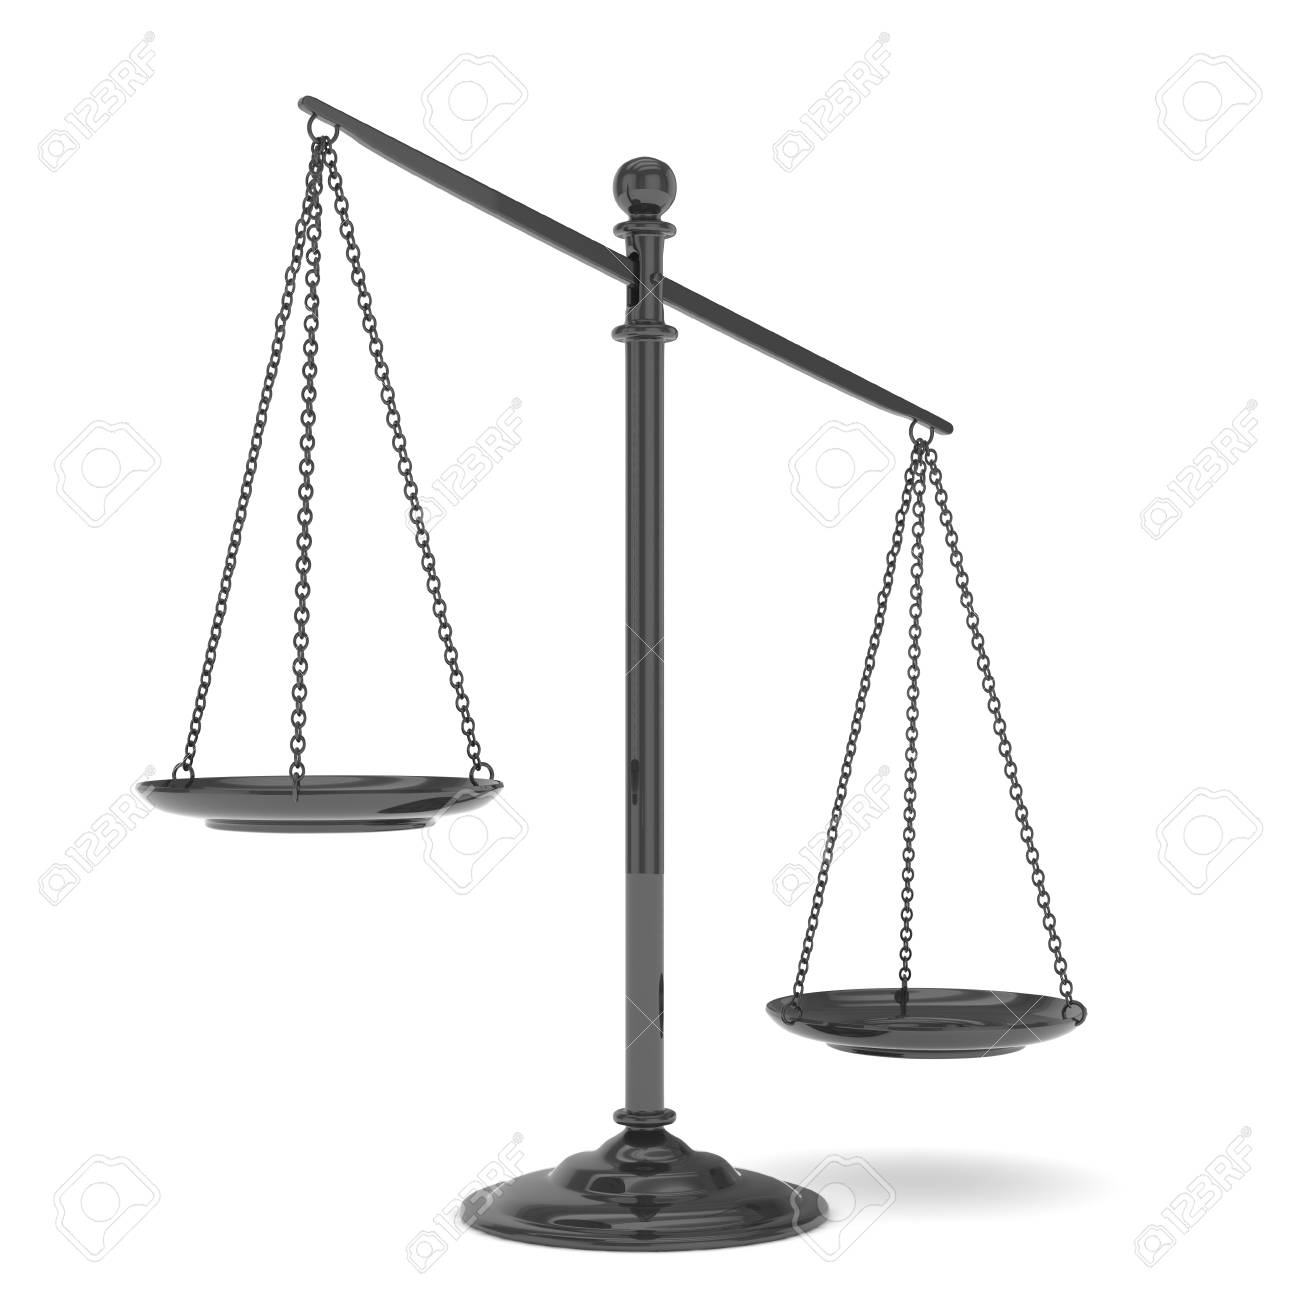 Isolated Black Scales On White Background Symbol Of Judgement